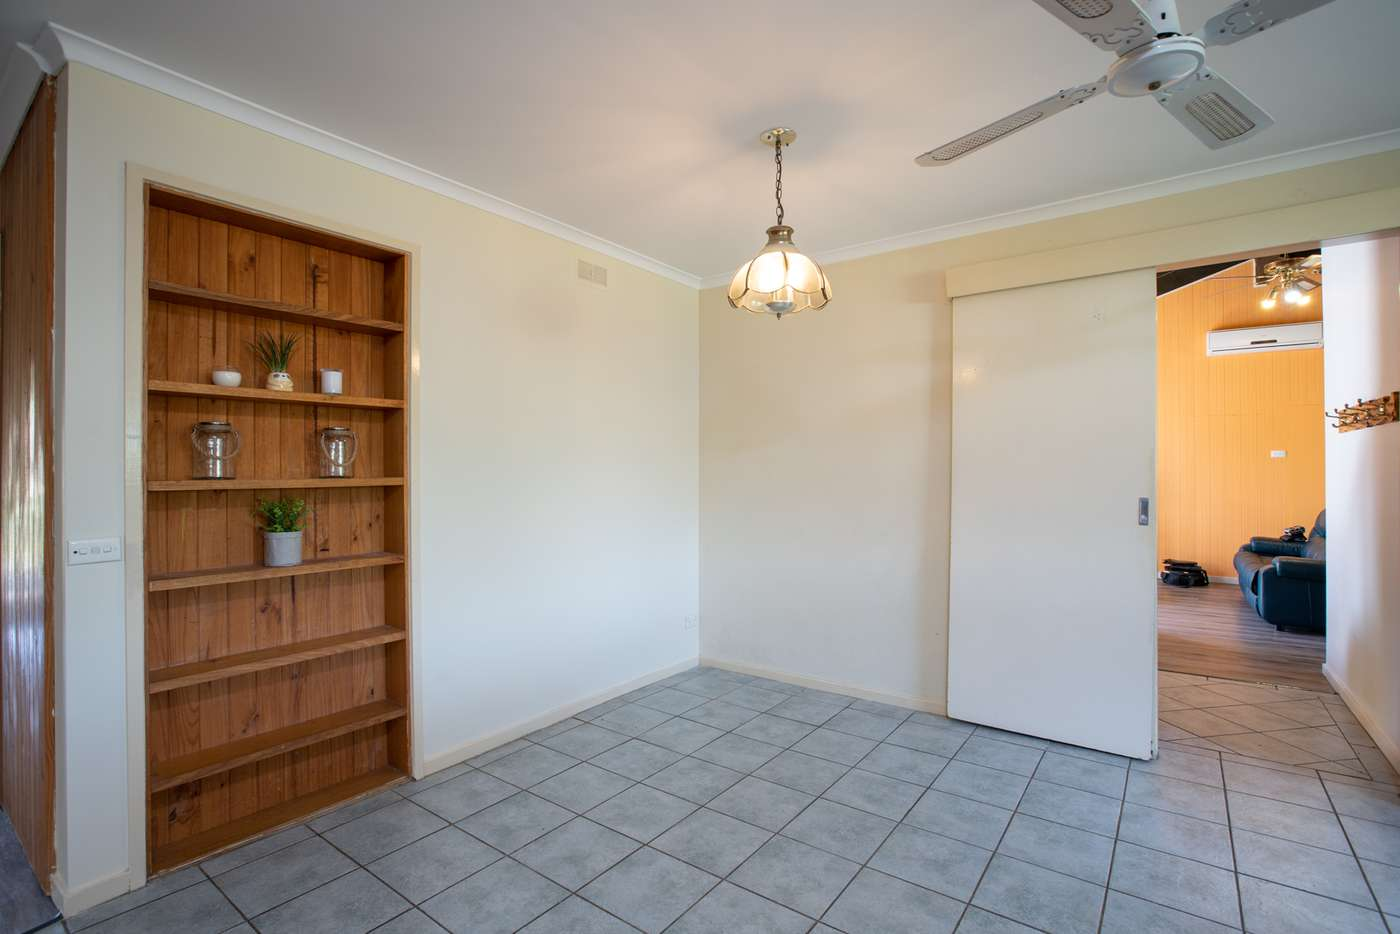 Sixth view of Homely house listing, 9 Haley Crescent, Wodonga VIC 3690